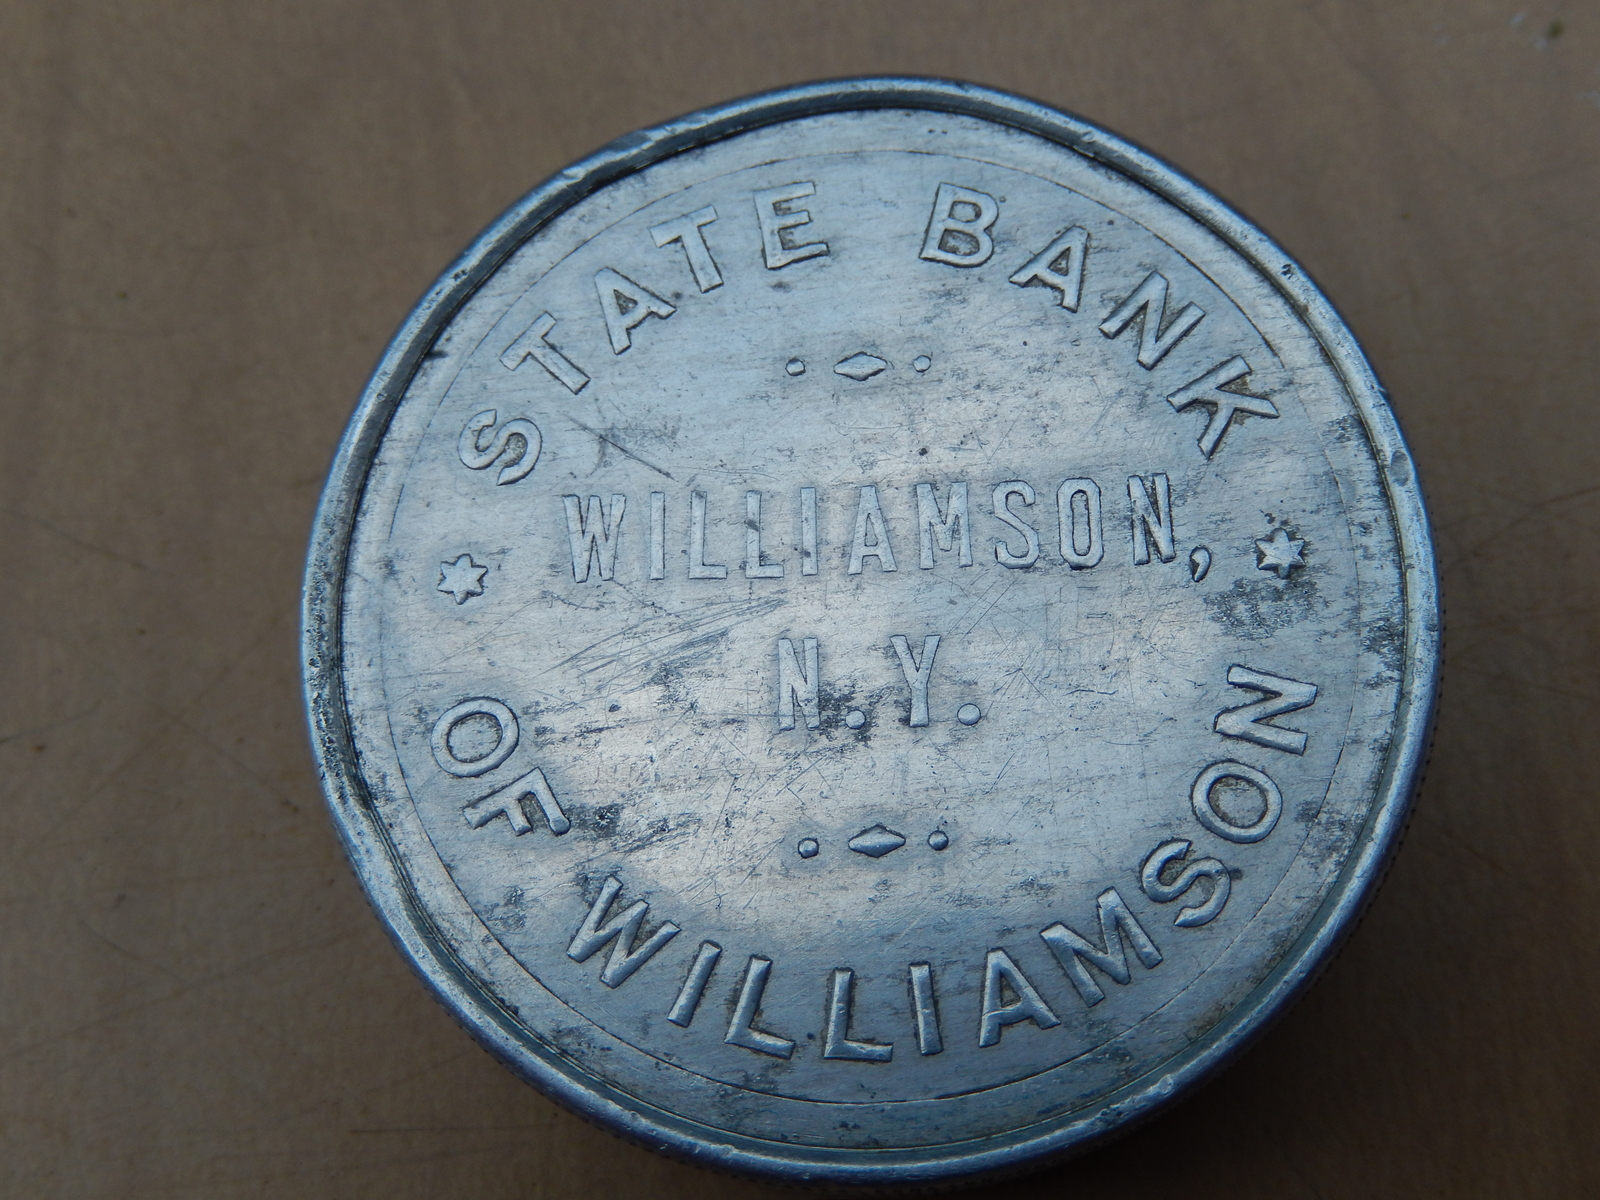 Rare State Bank of Williamson, NY Paperweight Circa 1905-1944